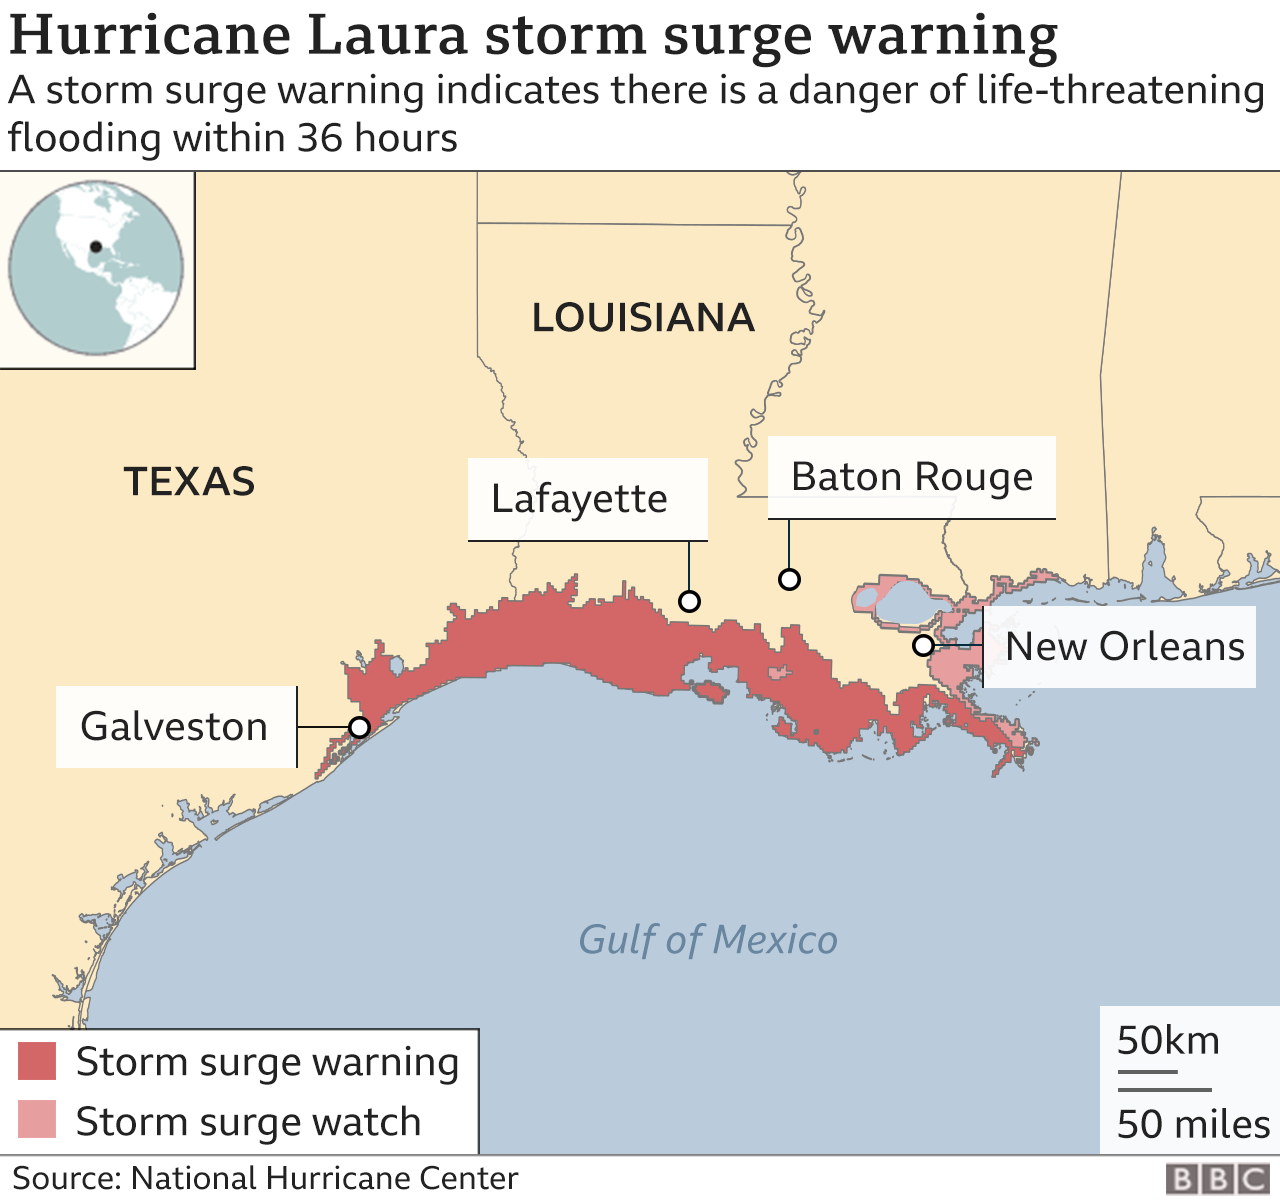 Map showing expected storm surge